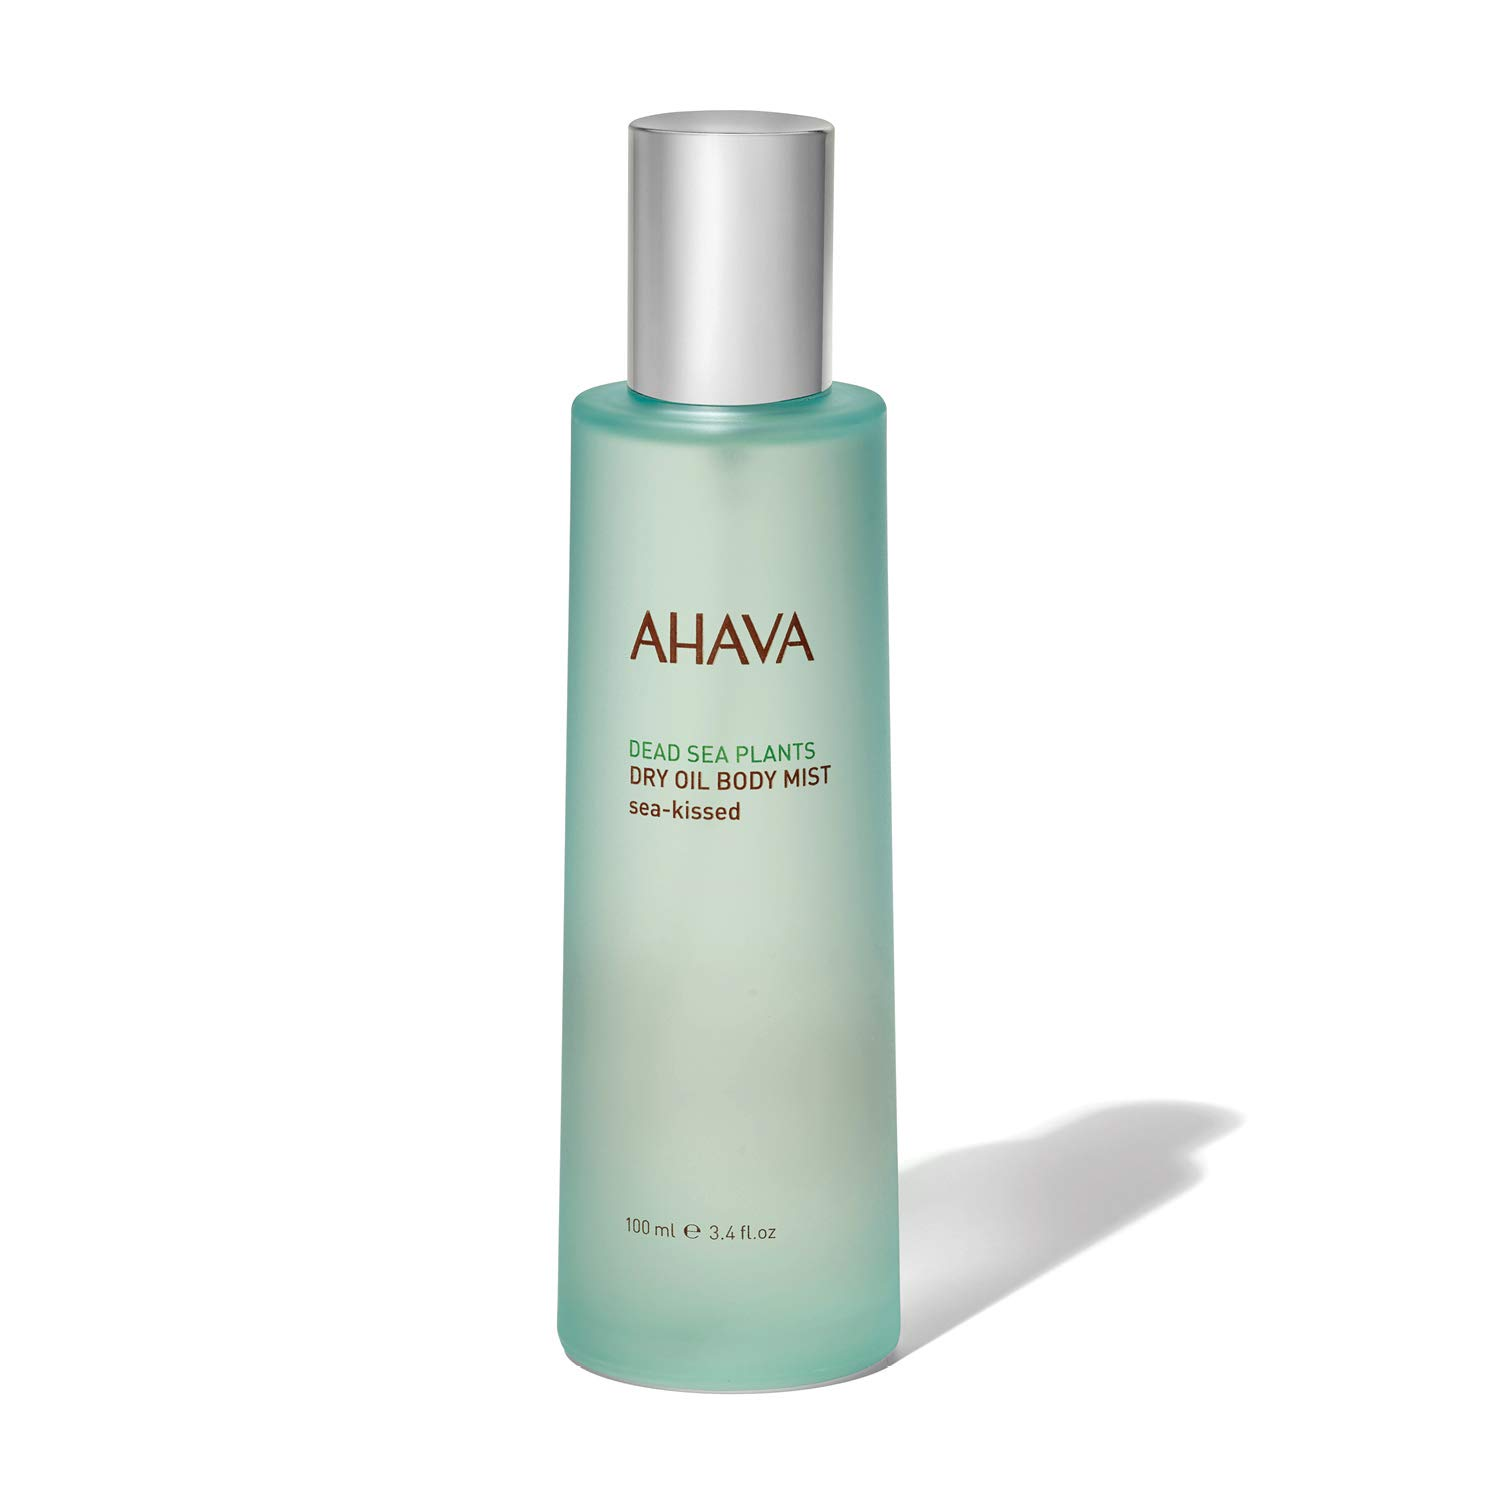 AHAVA Dry Oil Body Mists with Dead Sea Minerals